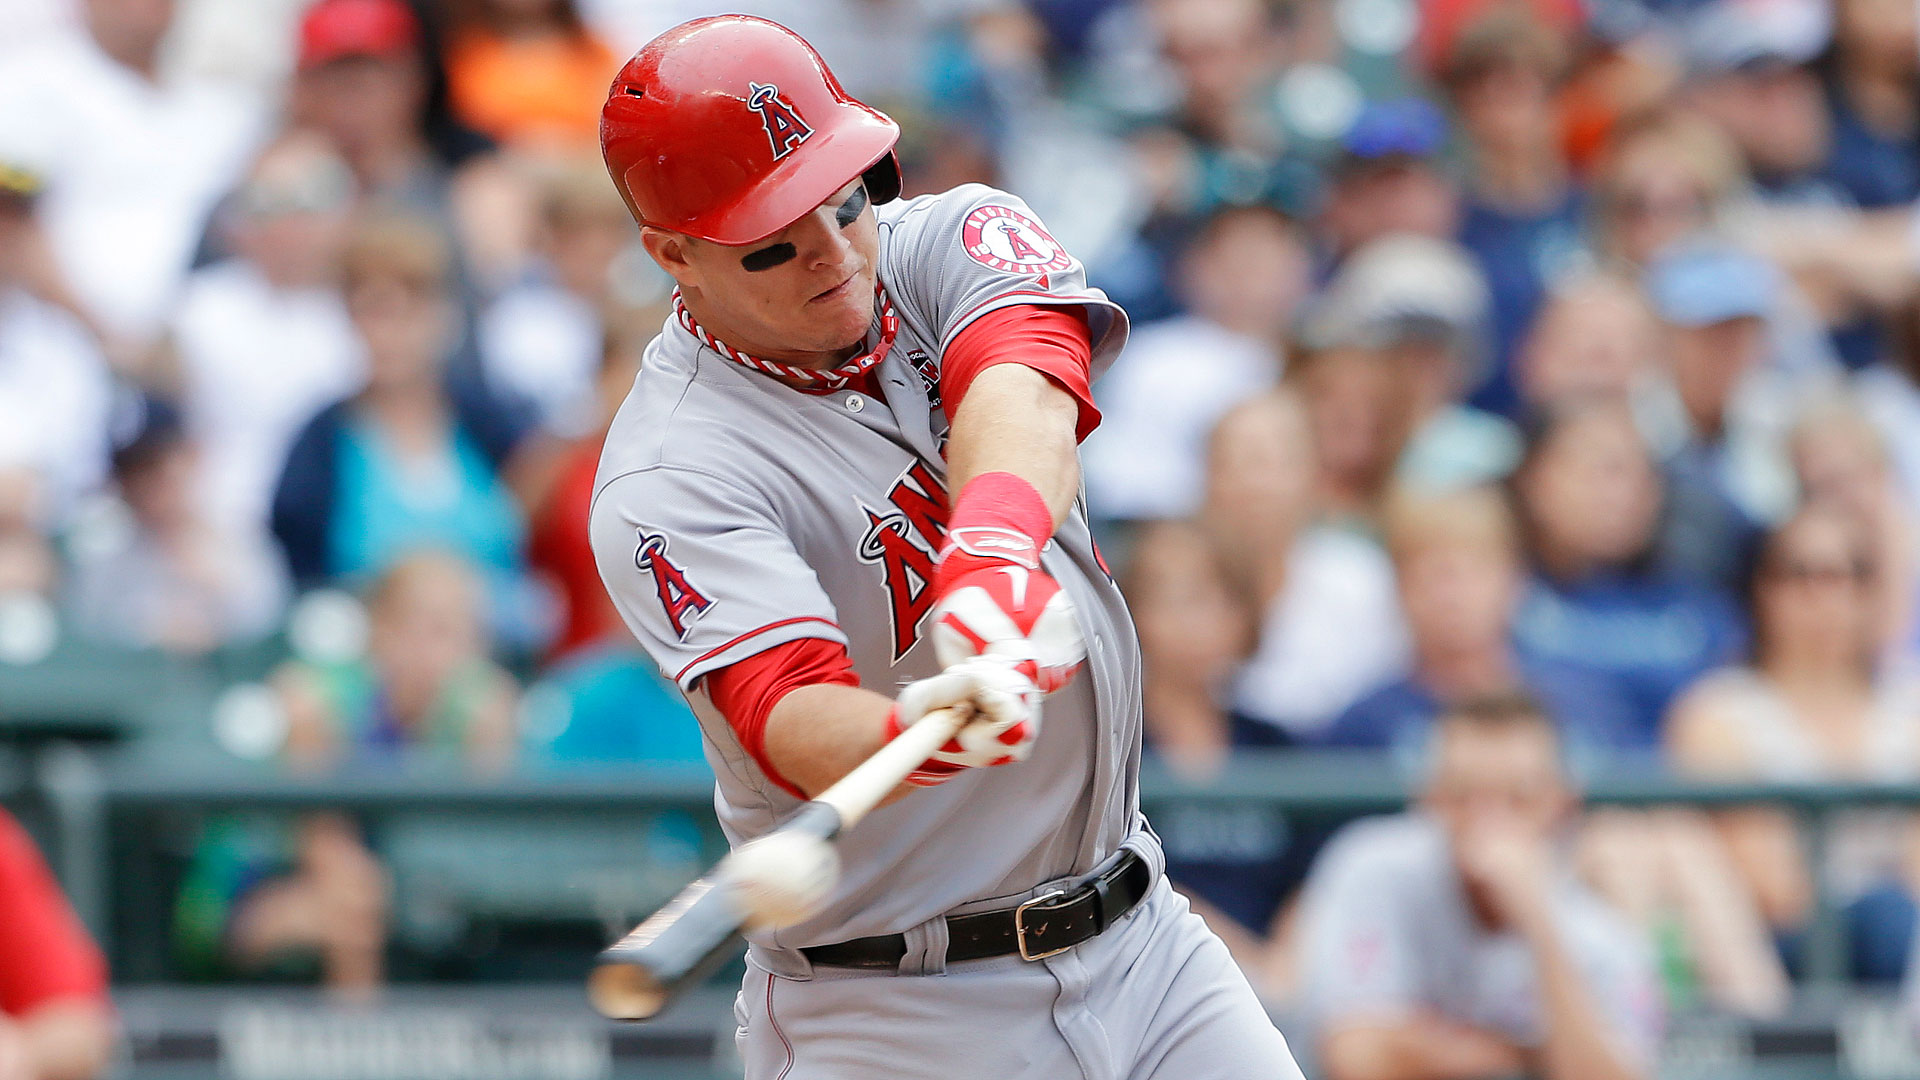 Outfield preview: Trout a big fish in a small pond